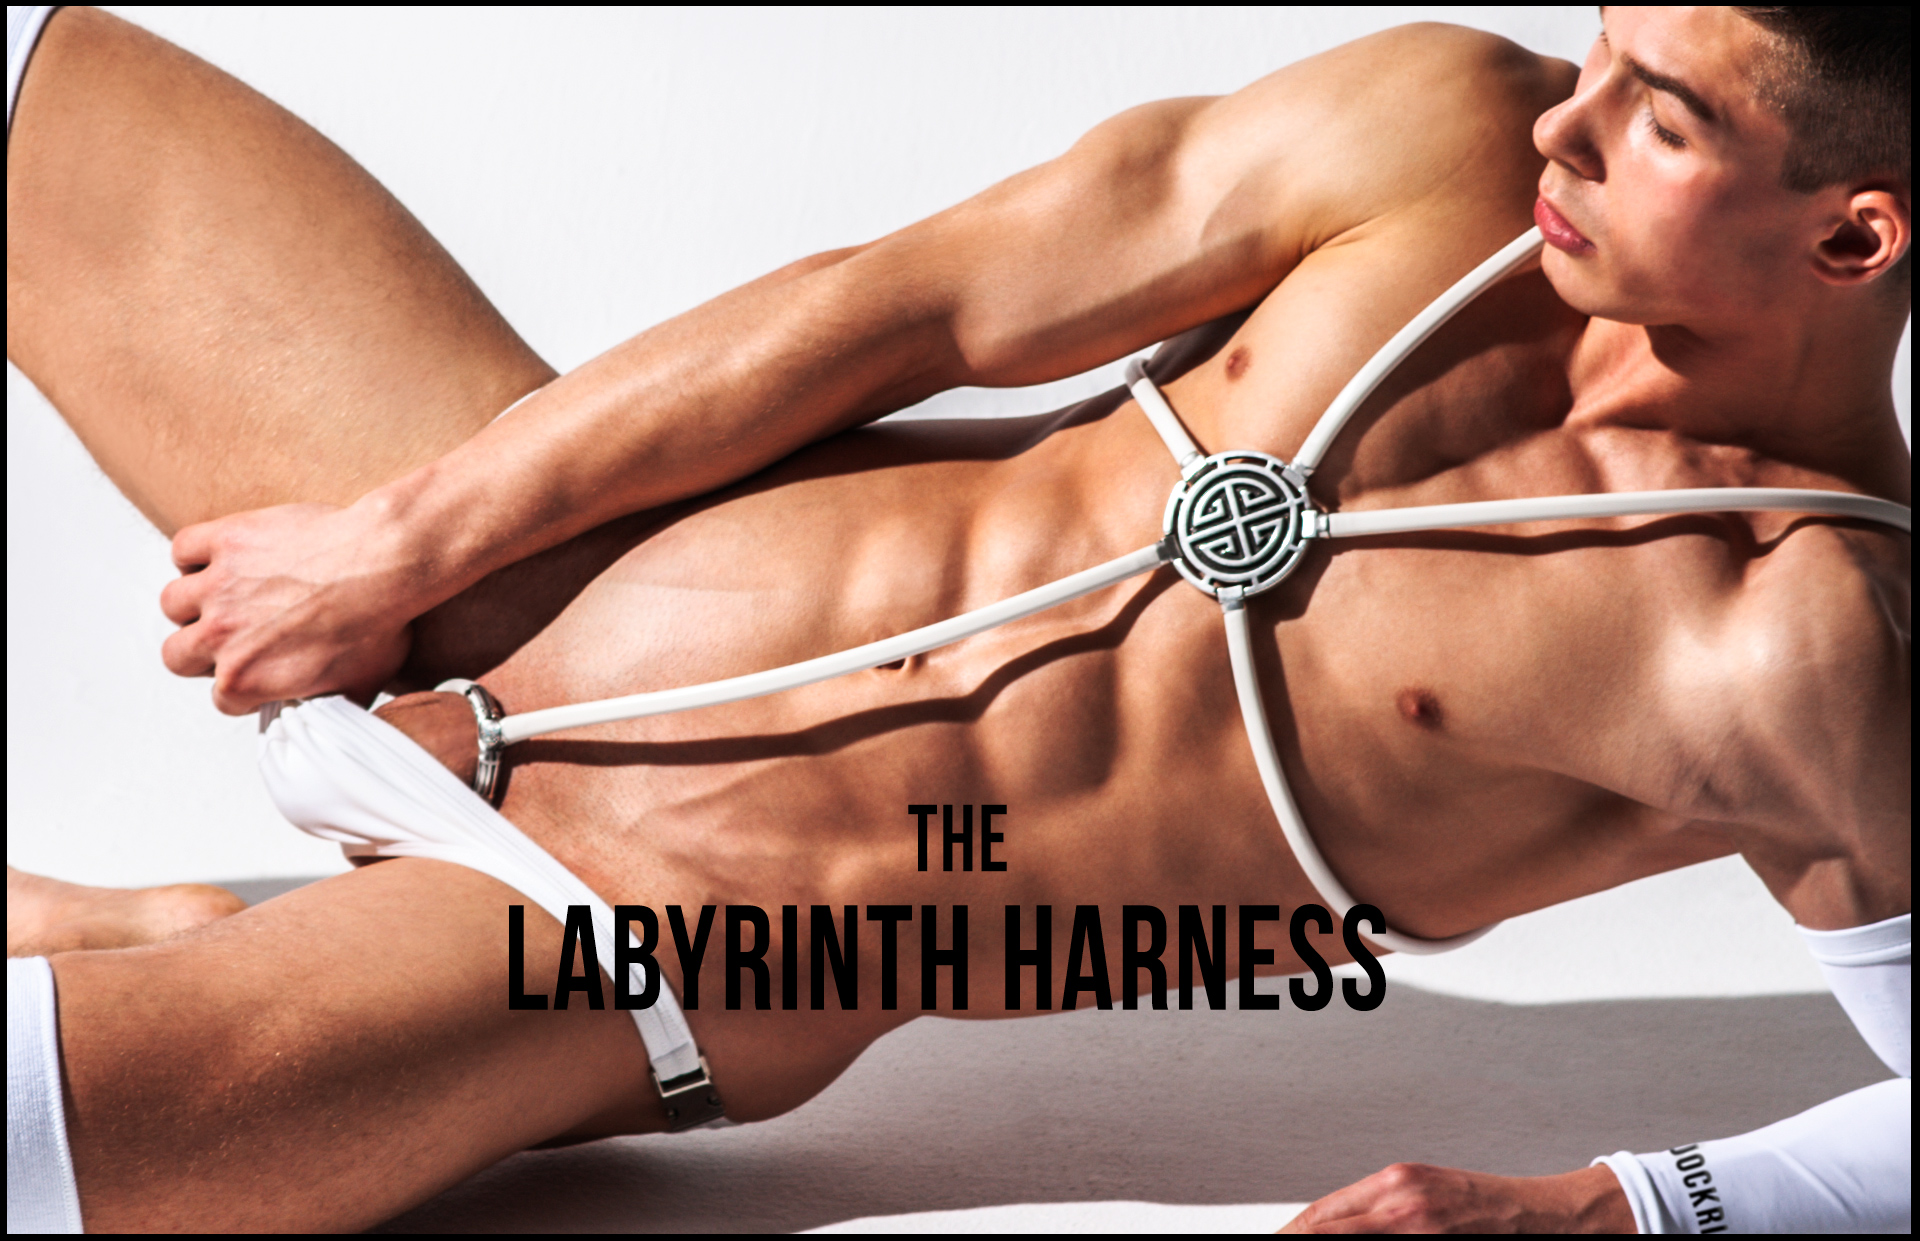 LAbyrhinth penis jewel and harness. Manly pleasures